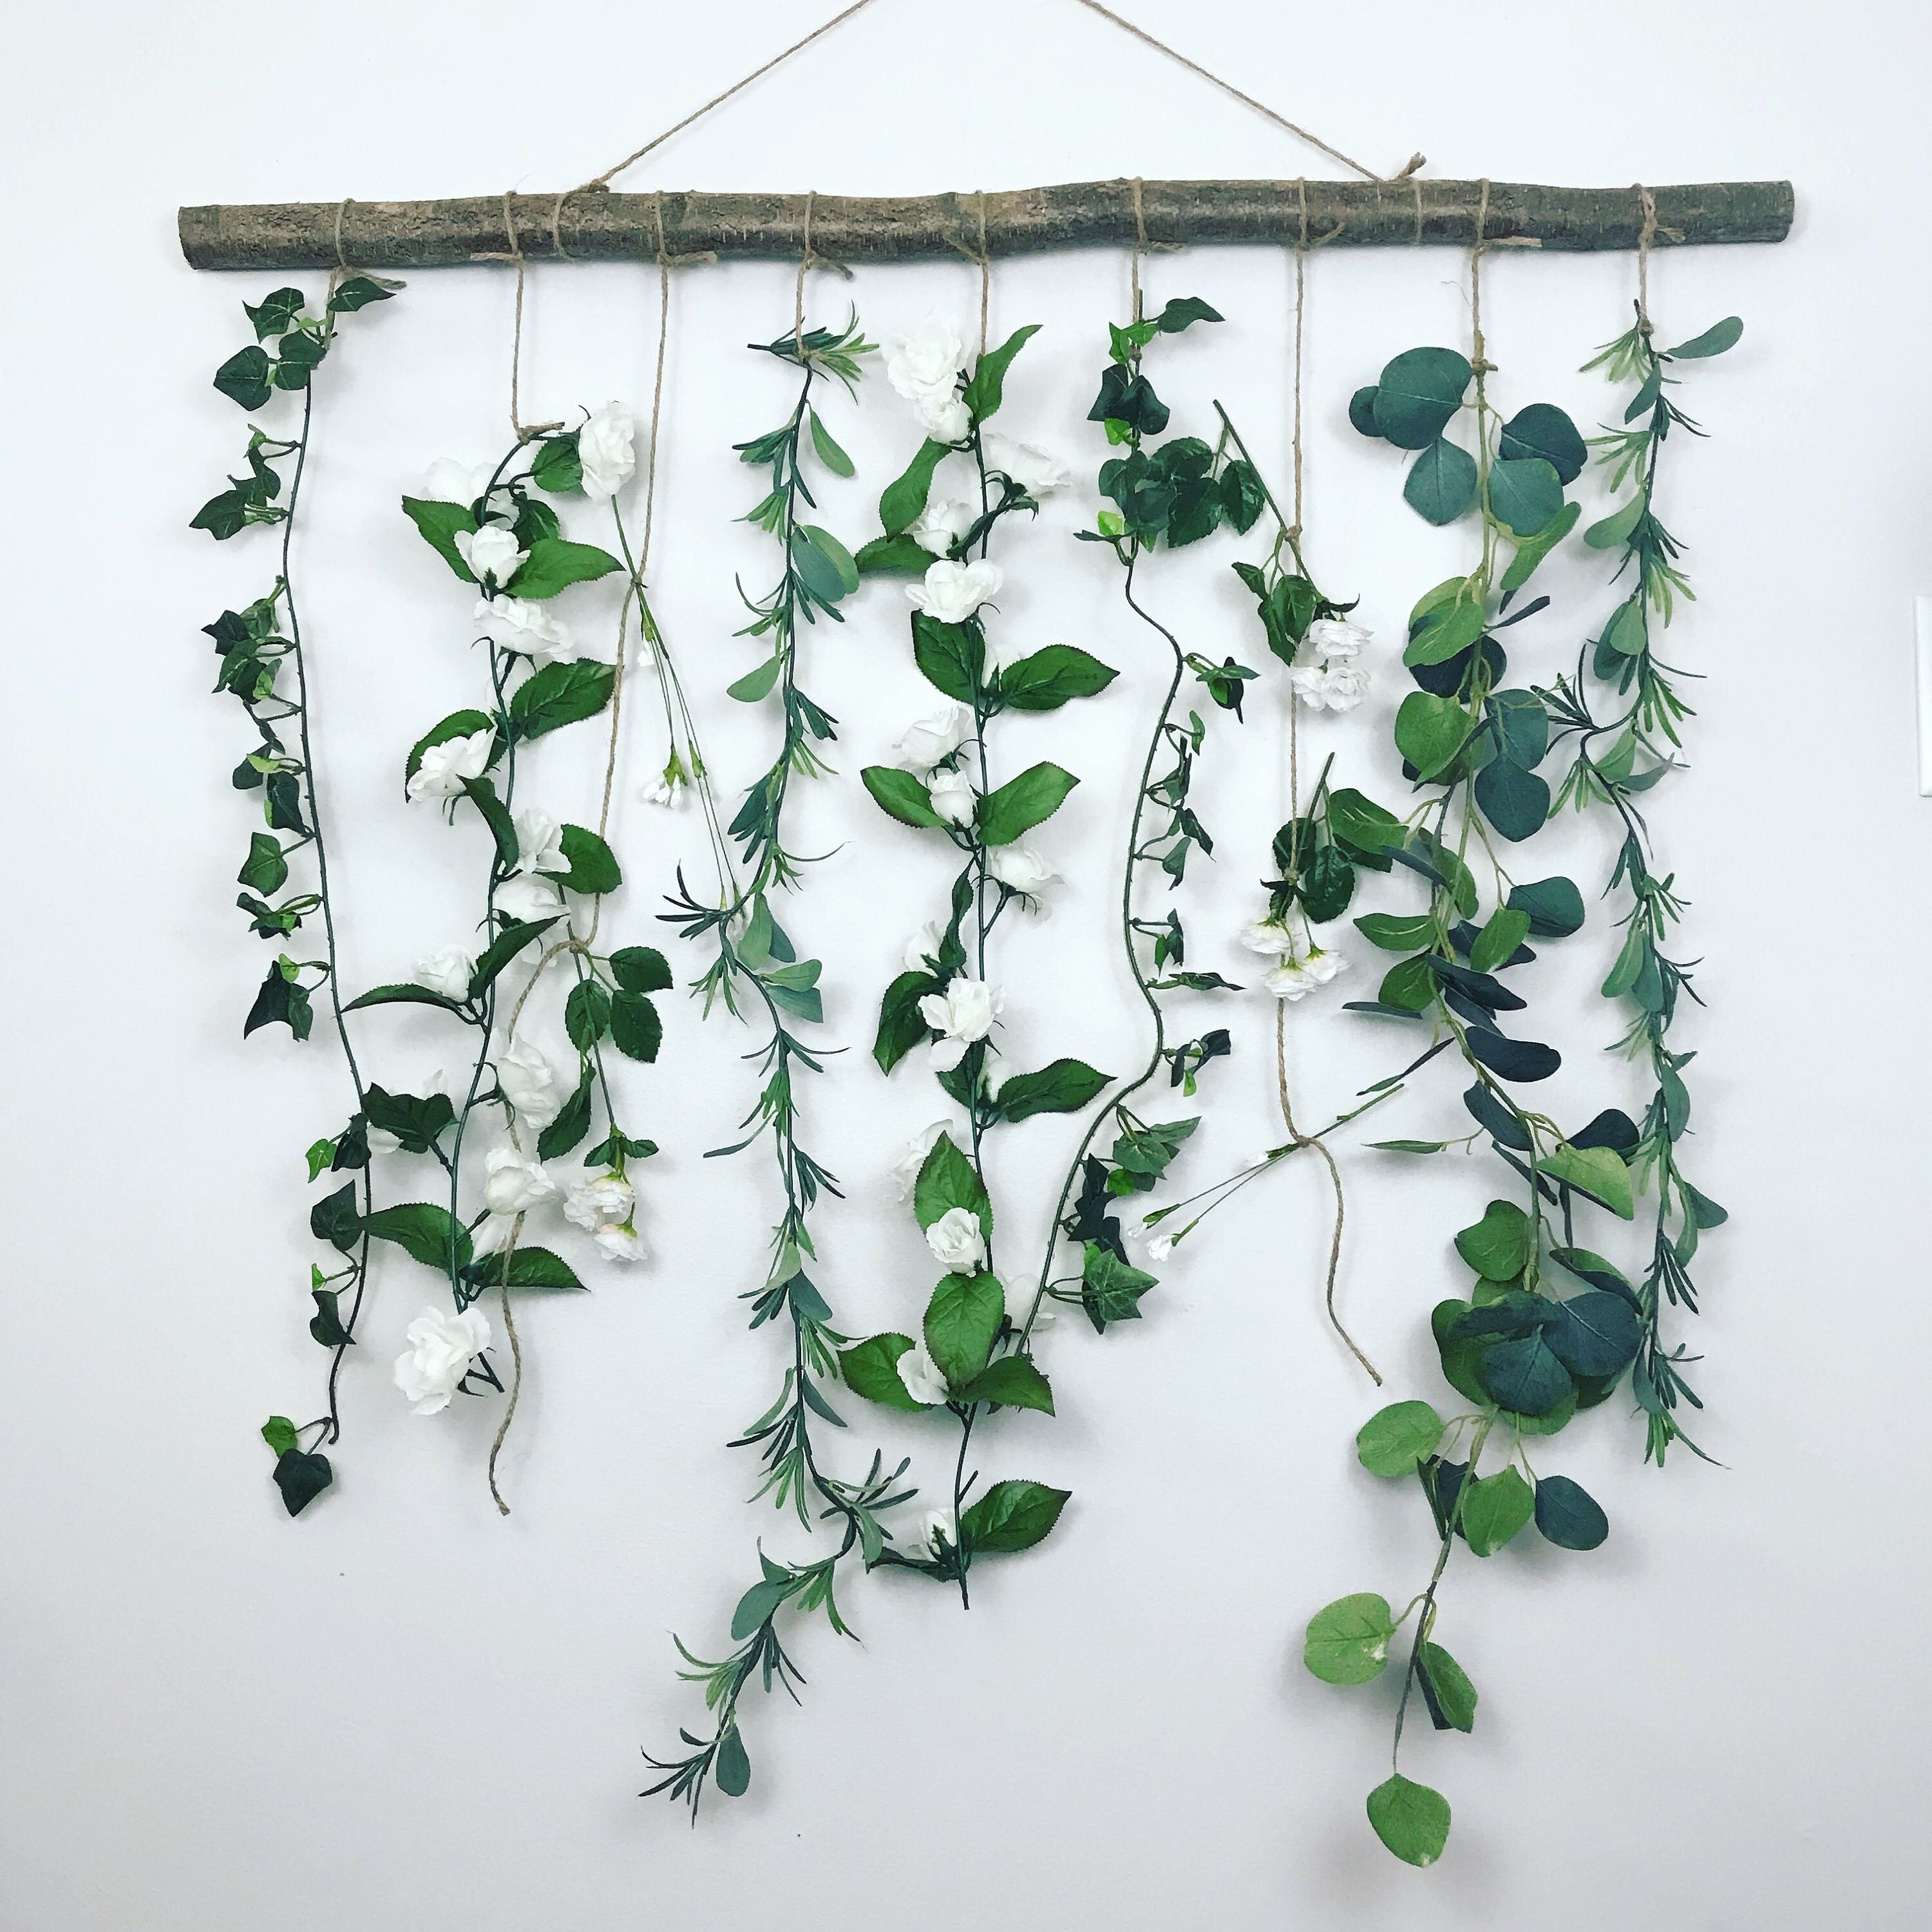 Pinallison On For The Home In 2019   Hanging Flower Wall Within Three Flowers On Vine Wall Decor (View 3 of 30)